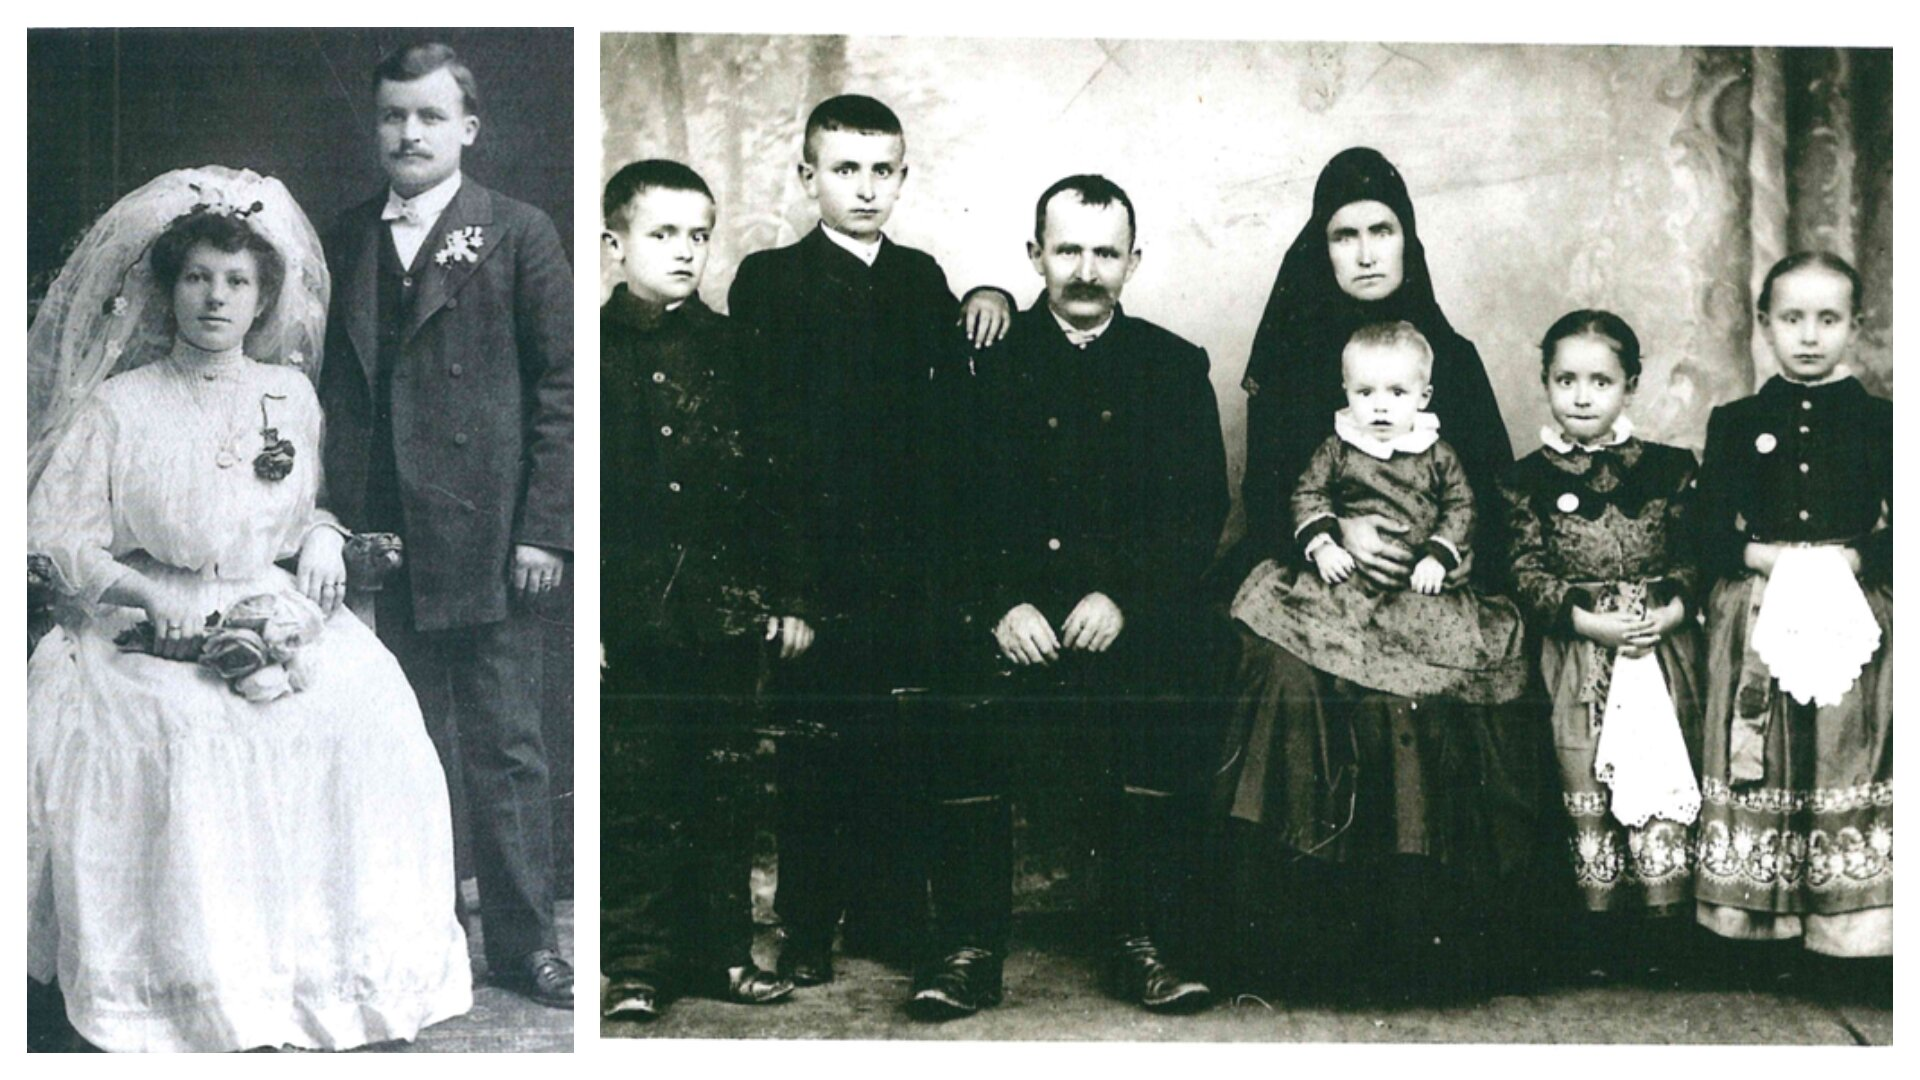 Left: Great grandparents, married after arrival in Chicago; Right: Great great grandparents and their youngest children